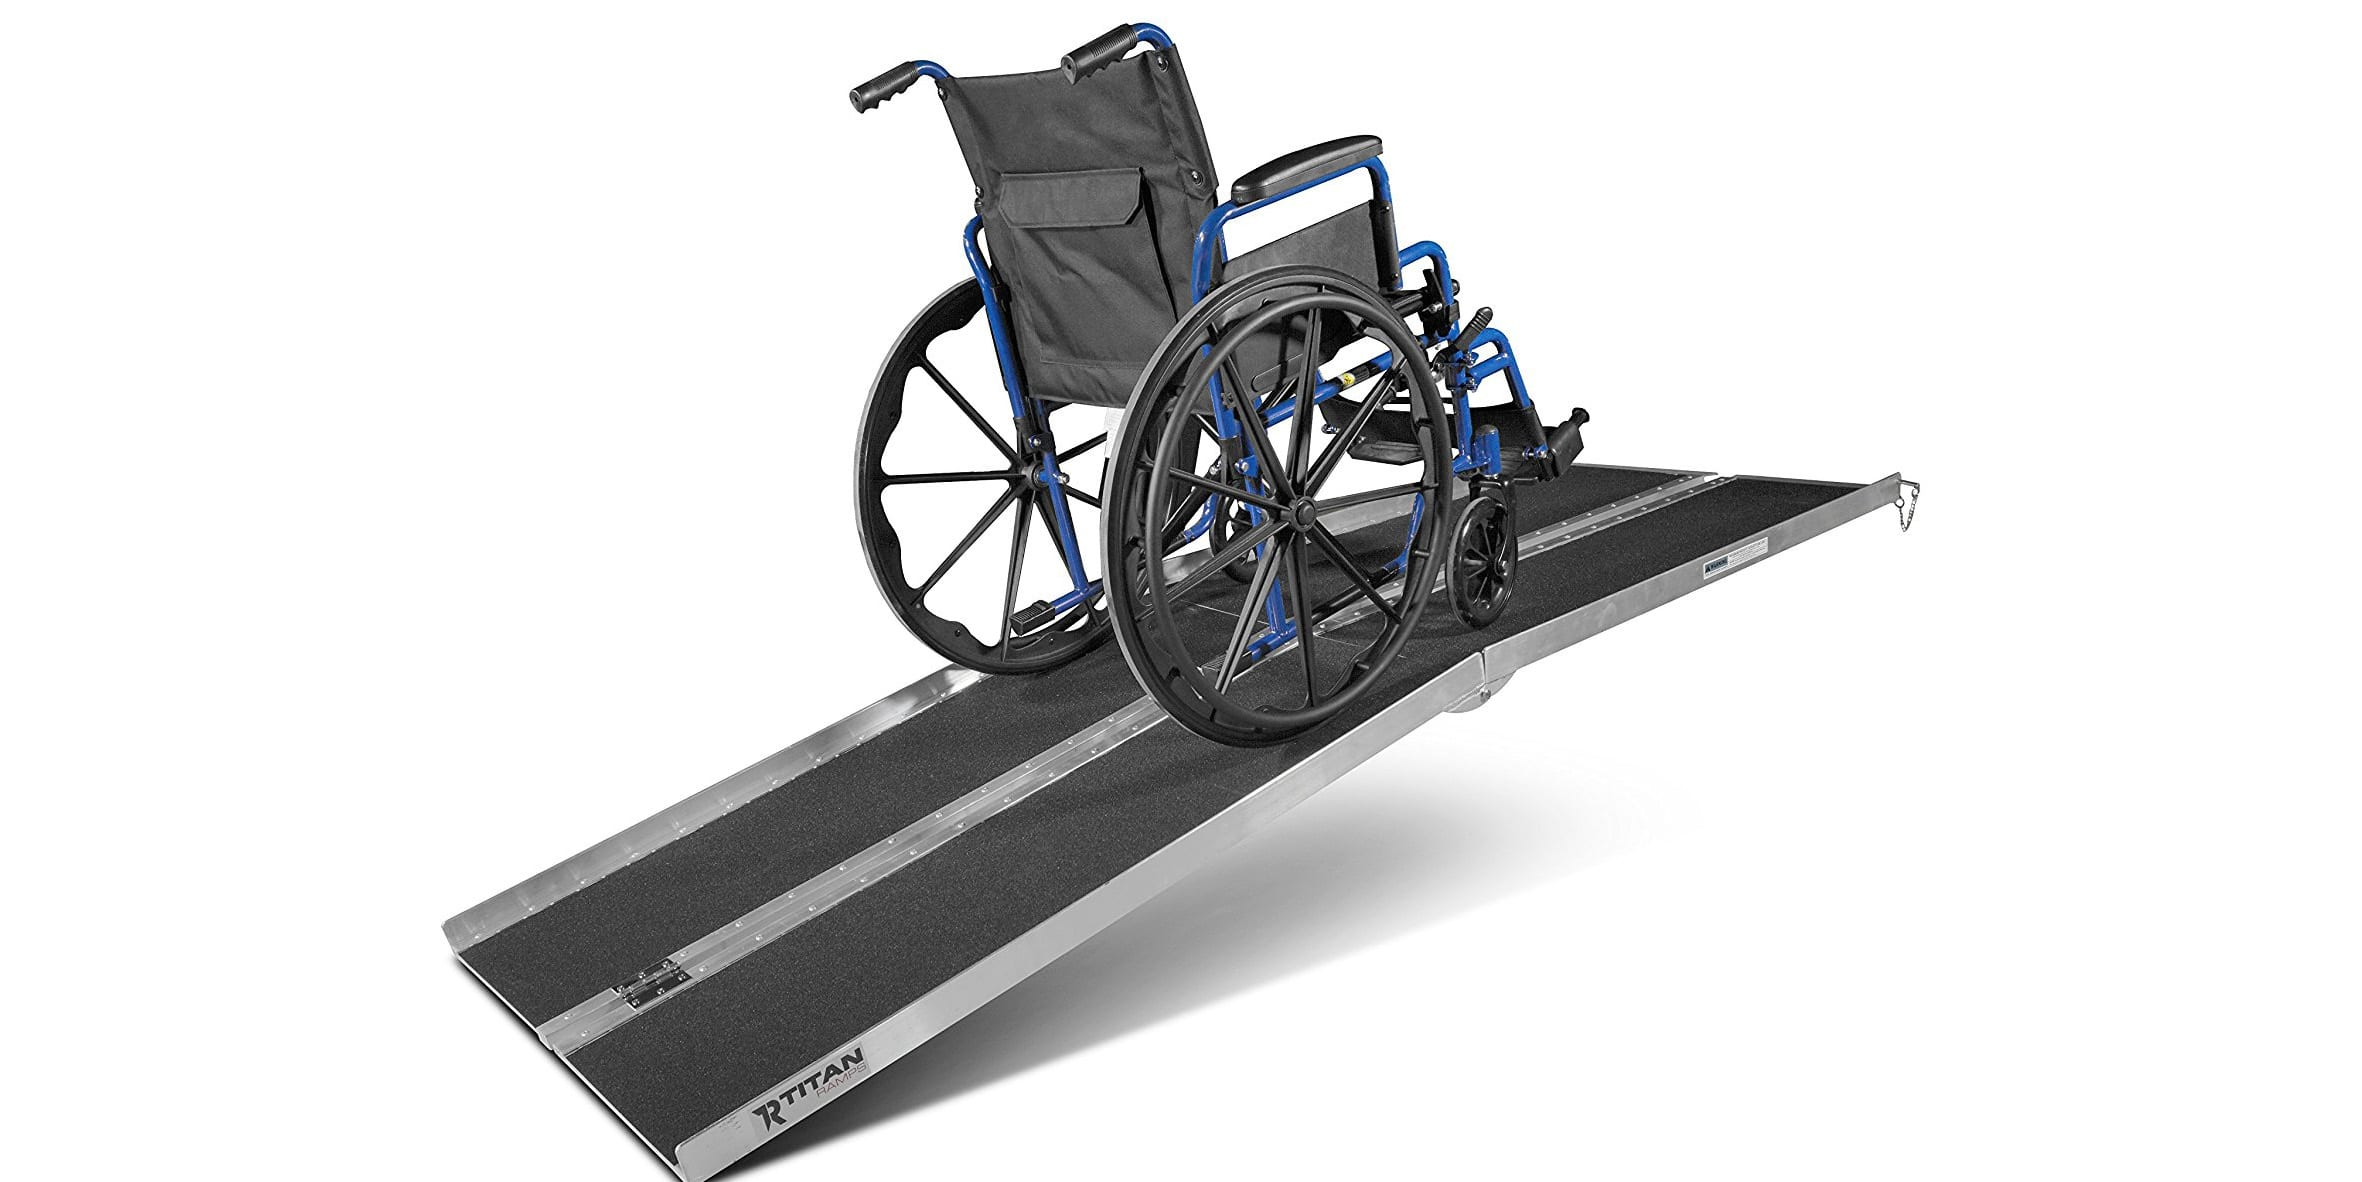 design analysis of ramps for handicapped people How to build ramps for home accessibility the ramp project  accessible ramps ramp design for individual situations ramps are an important feature in accessing a home or agricultural building this  code uses a 1:20 slope for exterior ramps, many people make the assumption that.